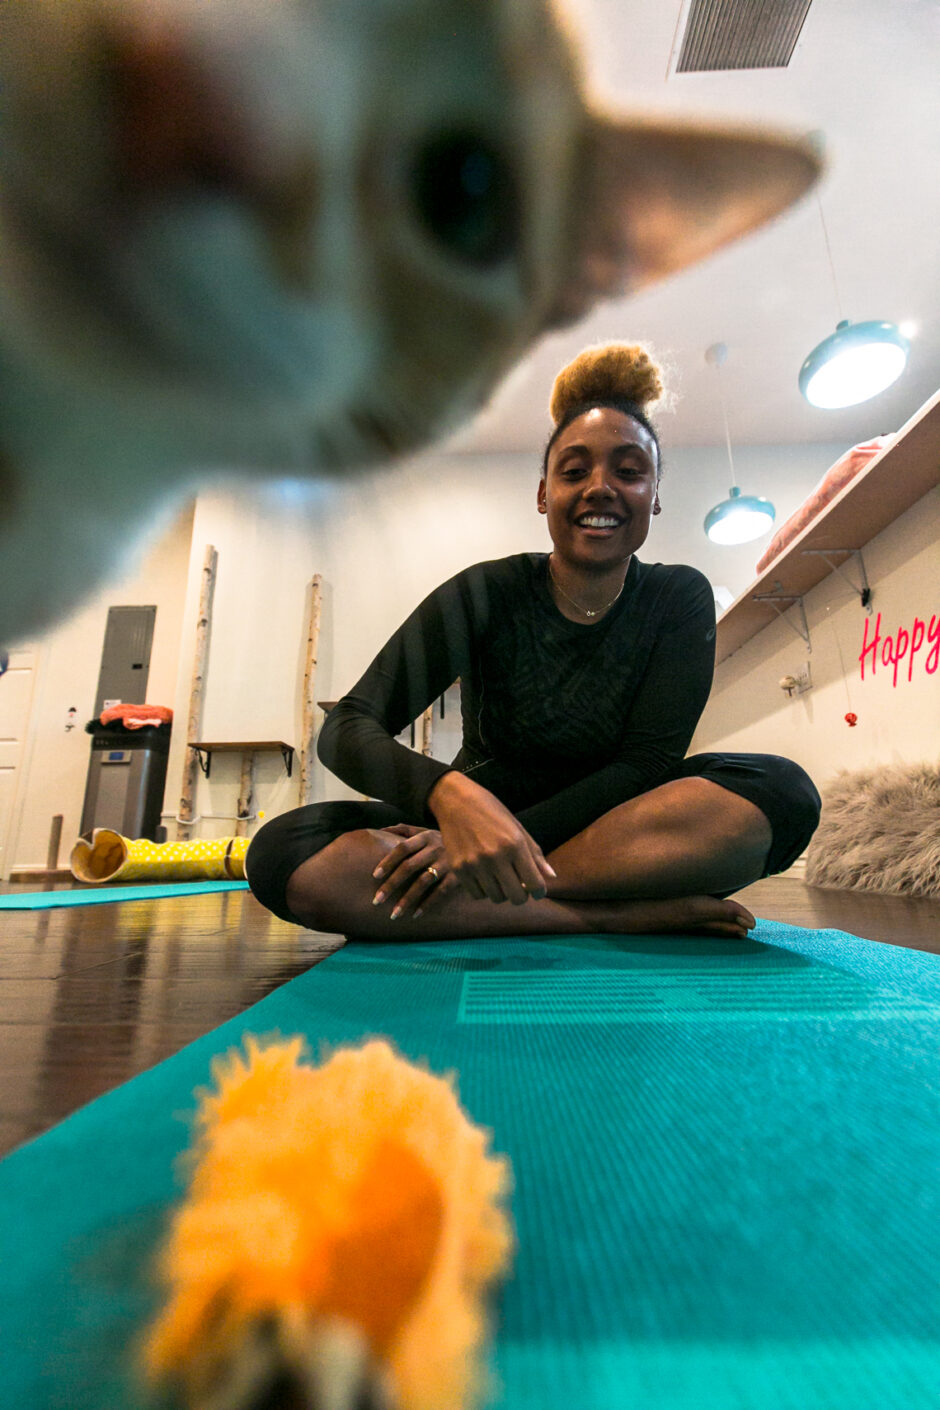 long beach-feline good social club-rsee-xmmtt-cats and mats yoga